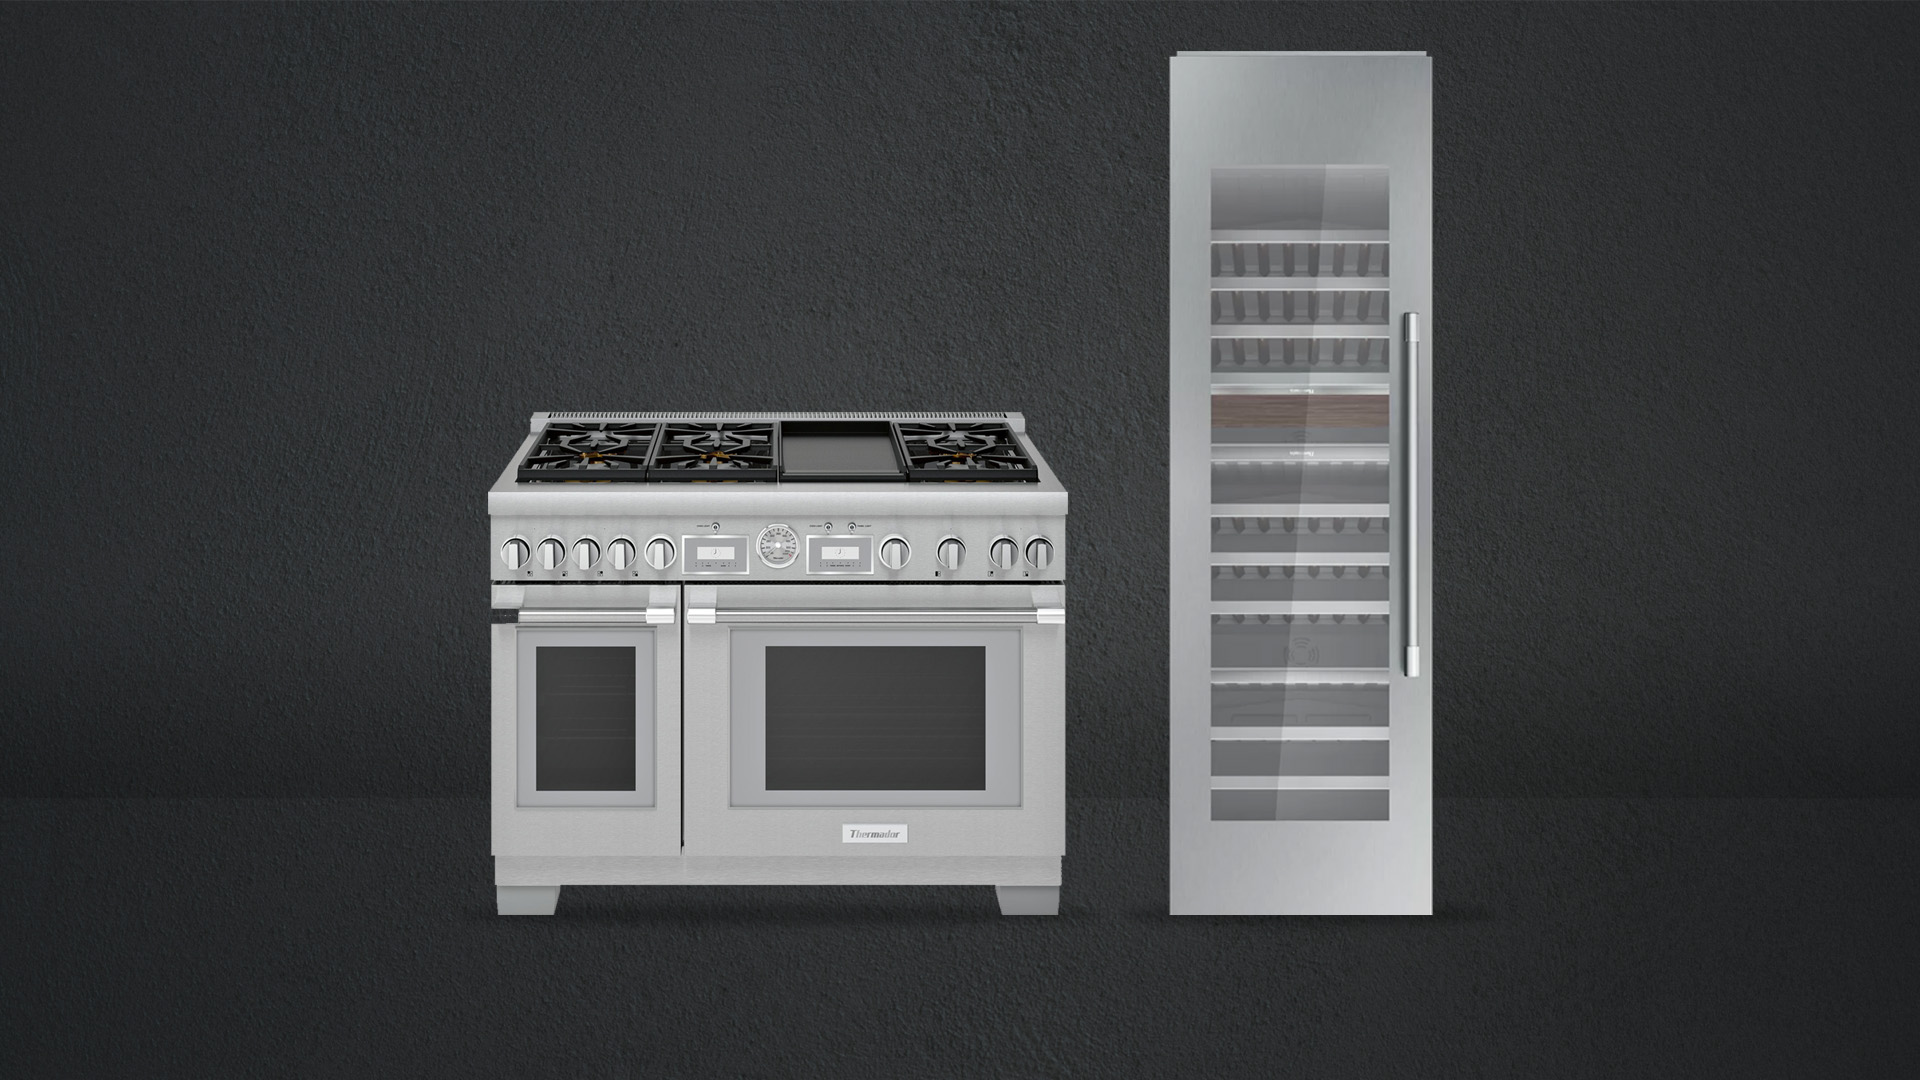 Thermador Appliance Repair Service Oakland | Thermador Appliance Repair Pros